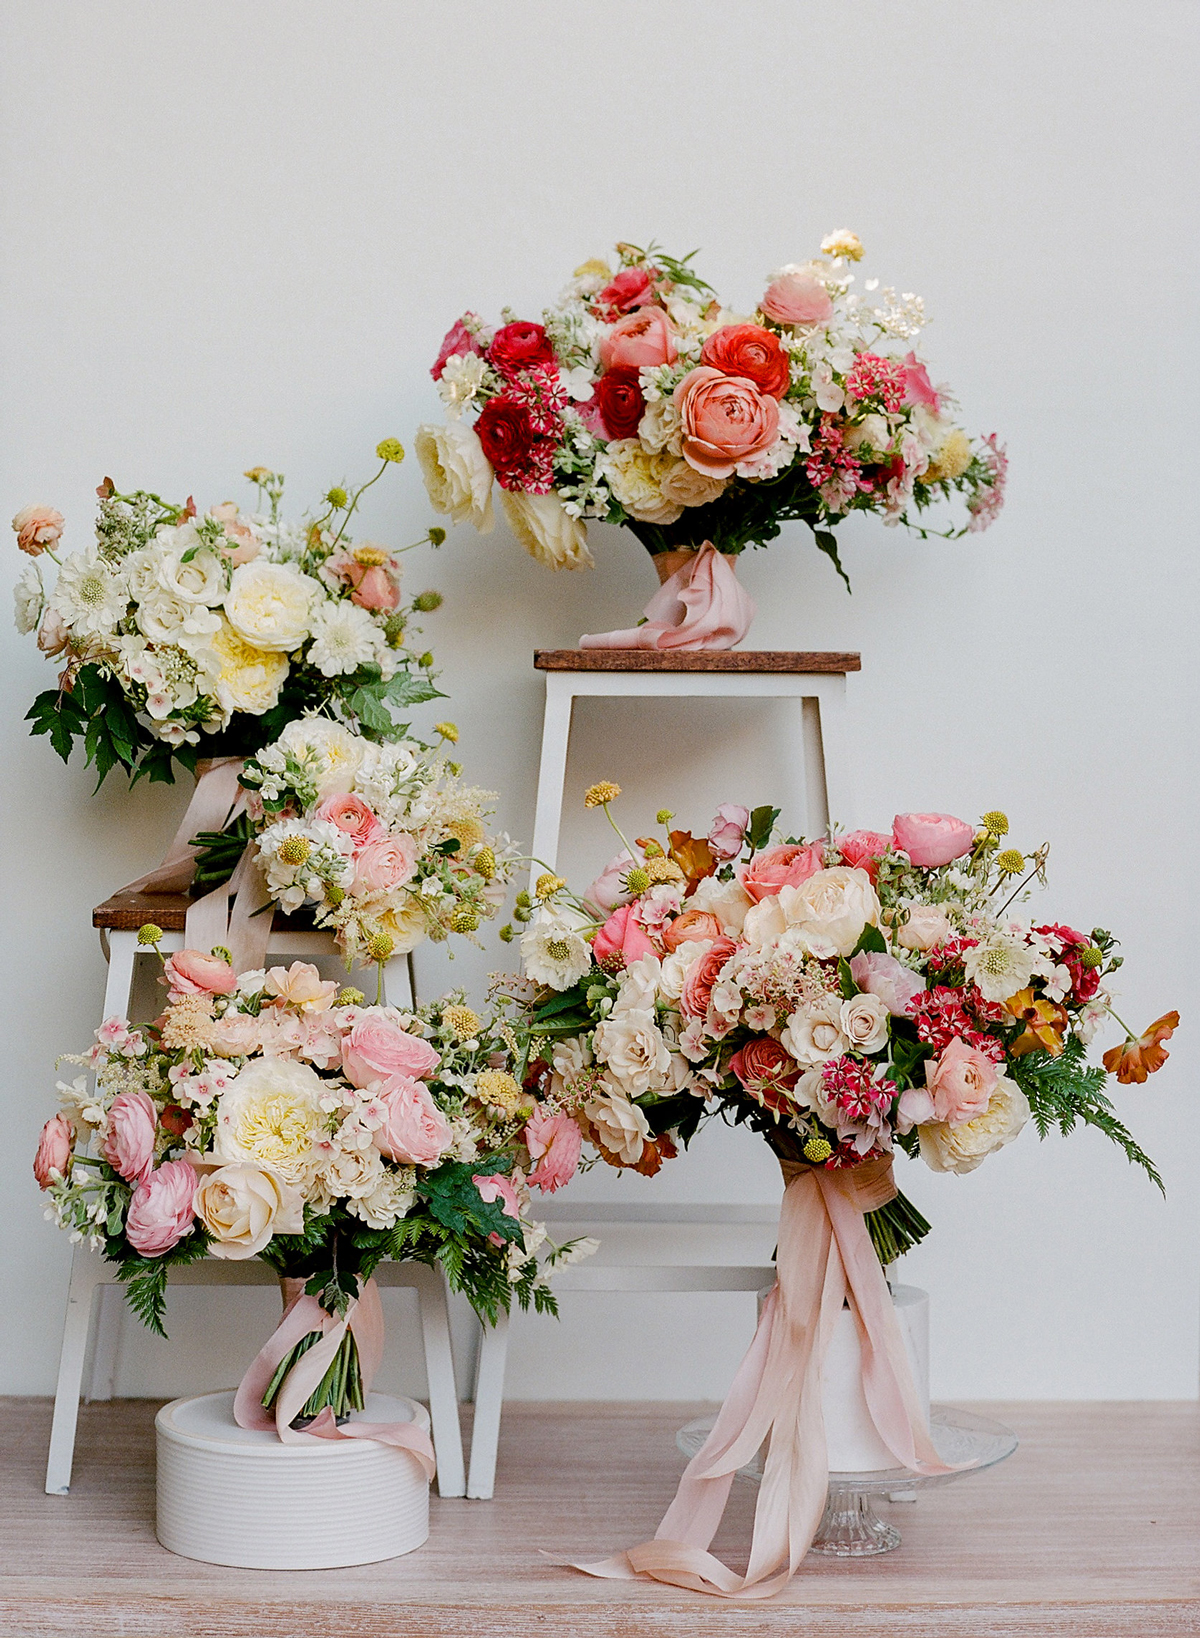 Rose Wedding Bouquets for Every Budget—from $100 to $500